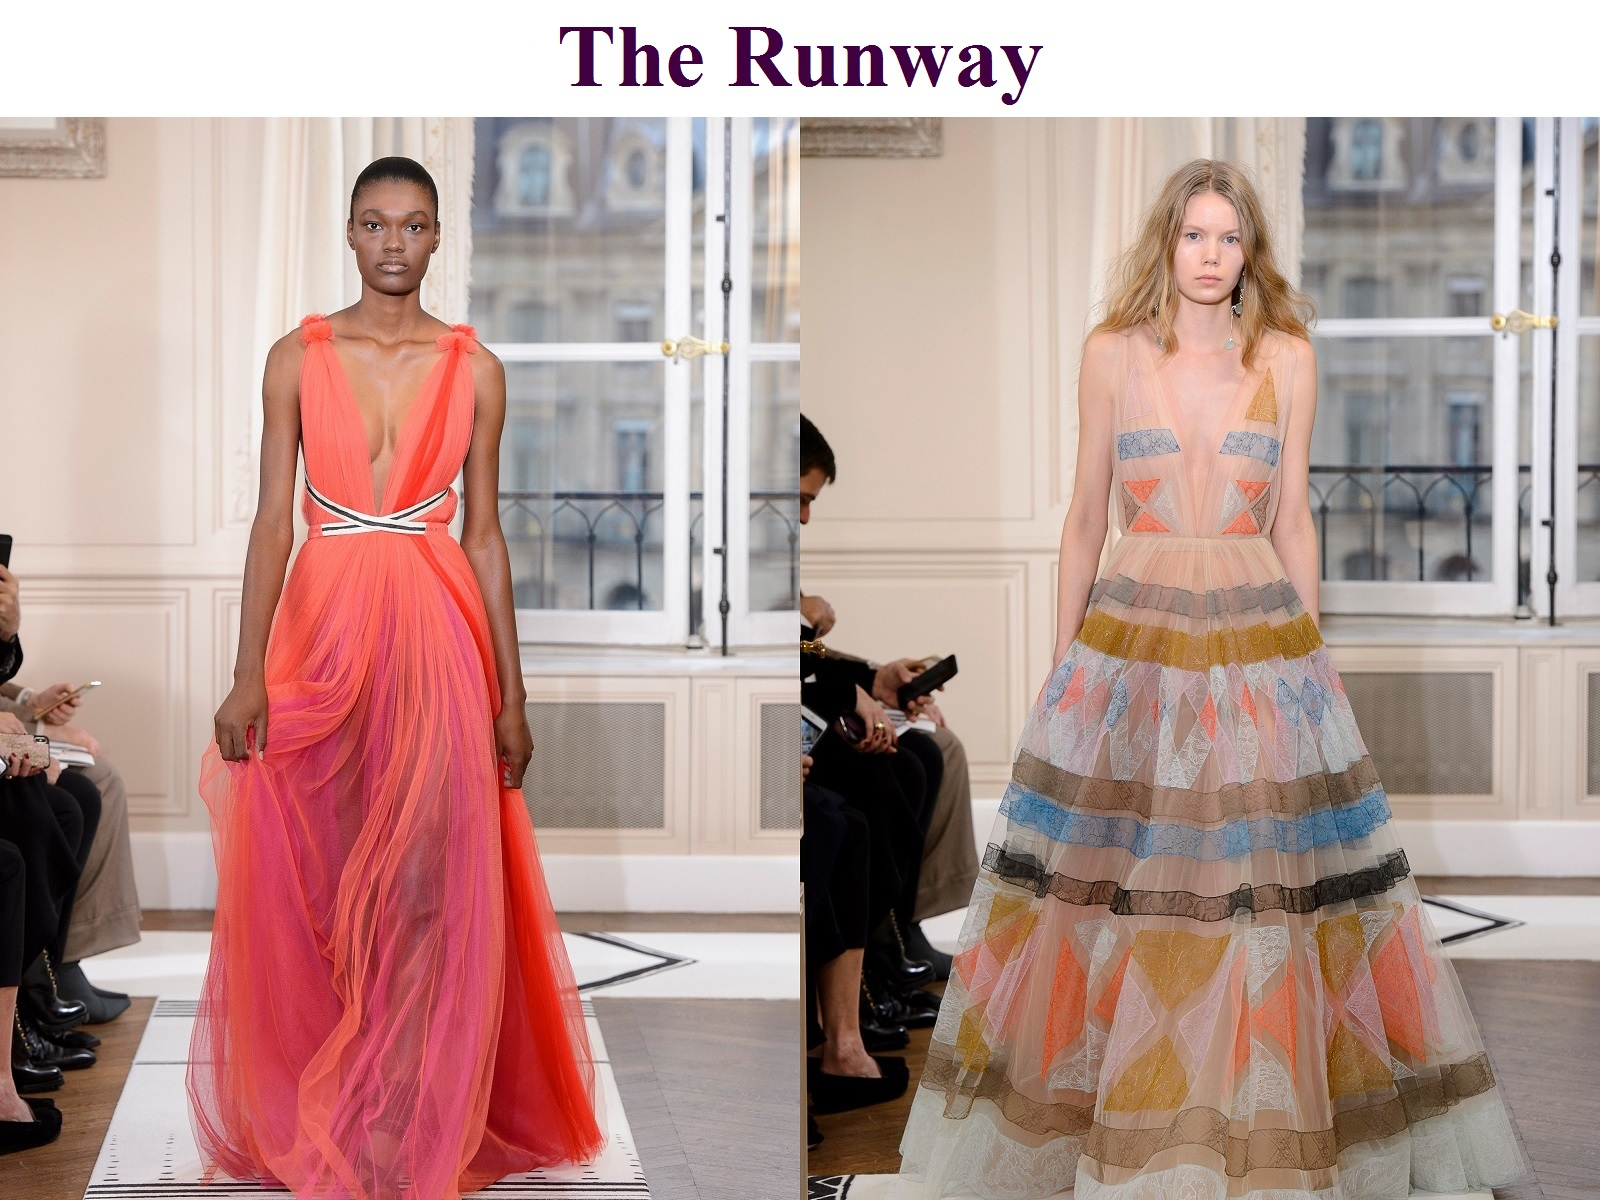 cover_fashion_therunway1